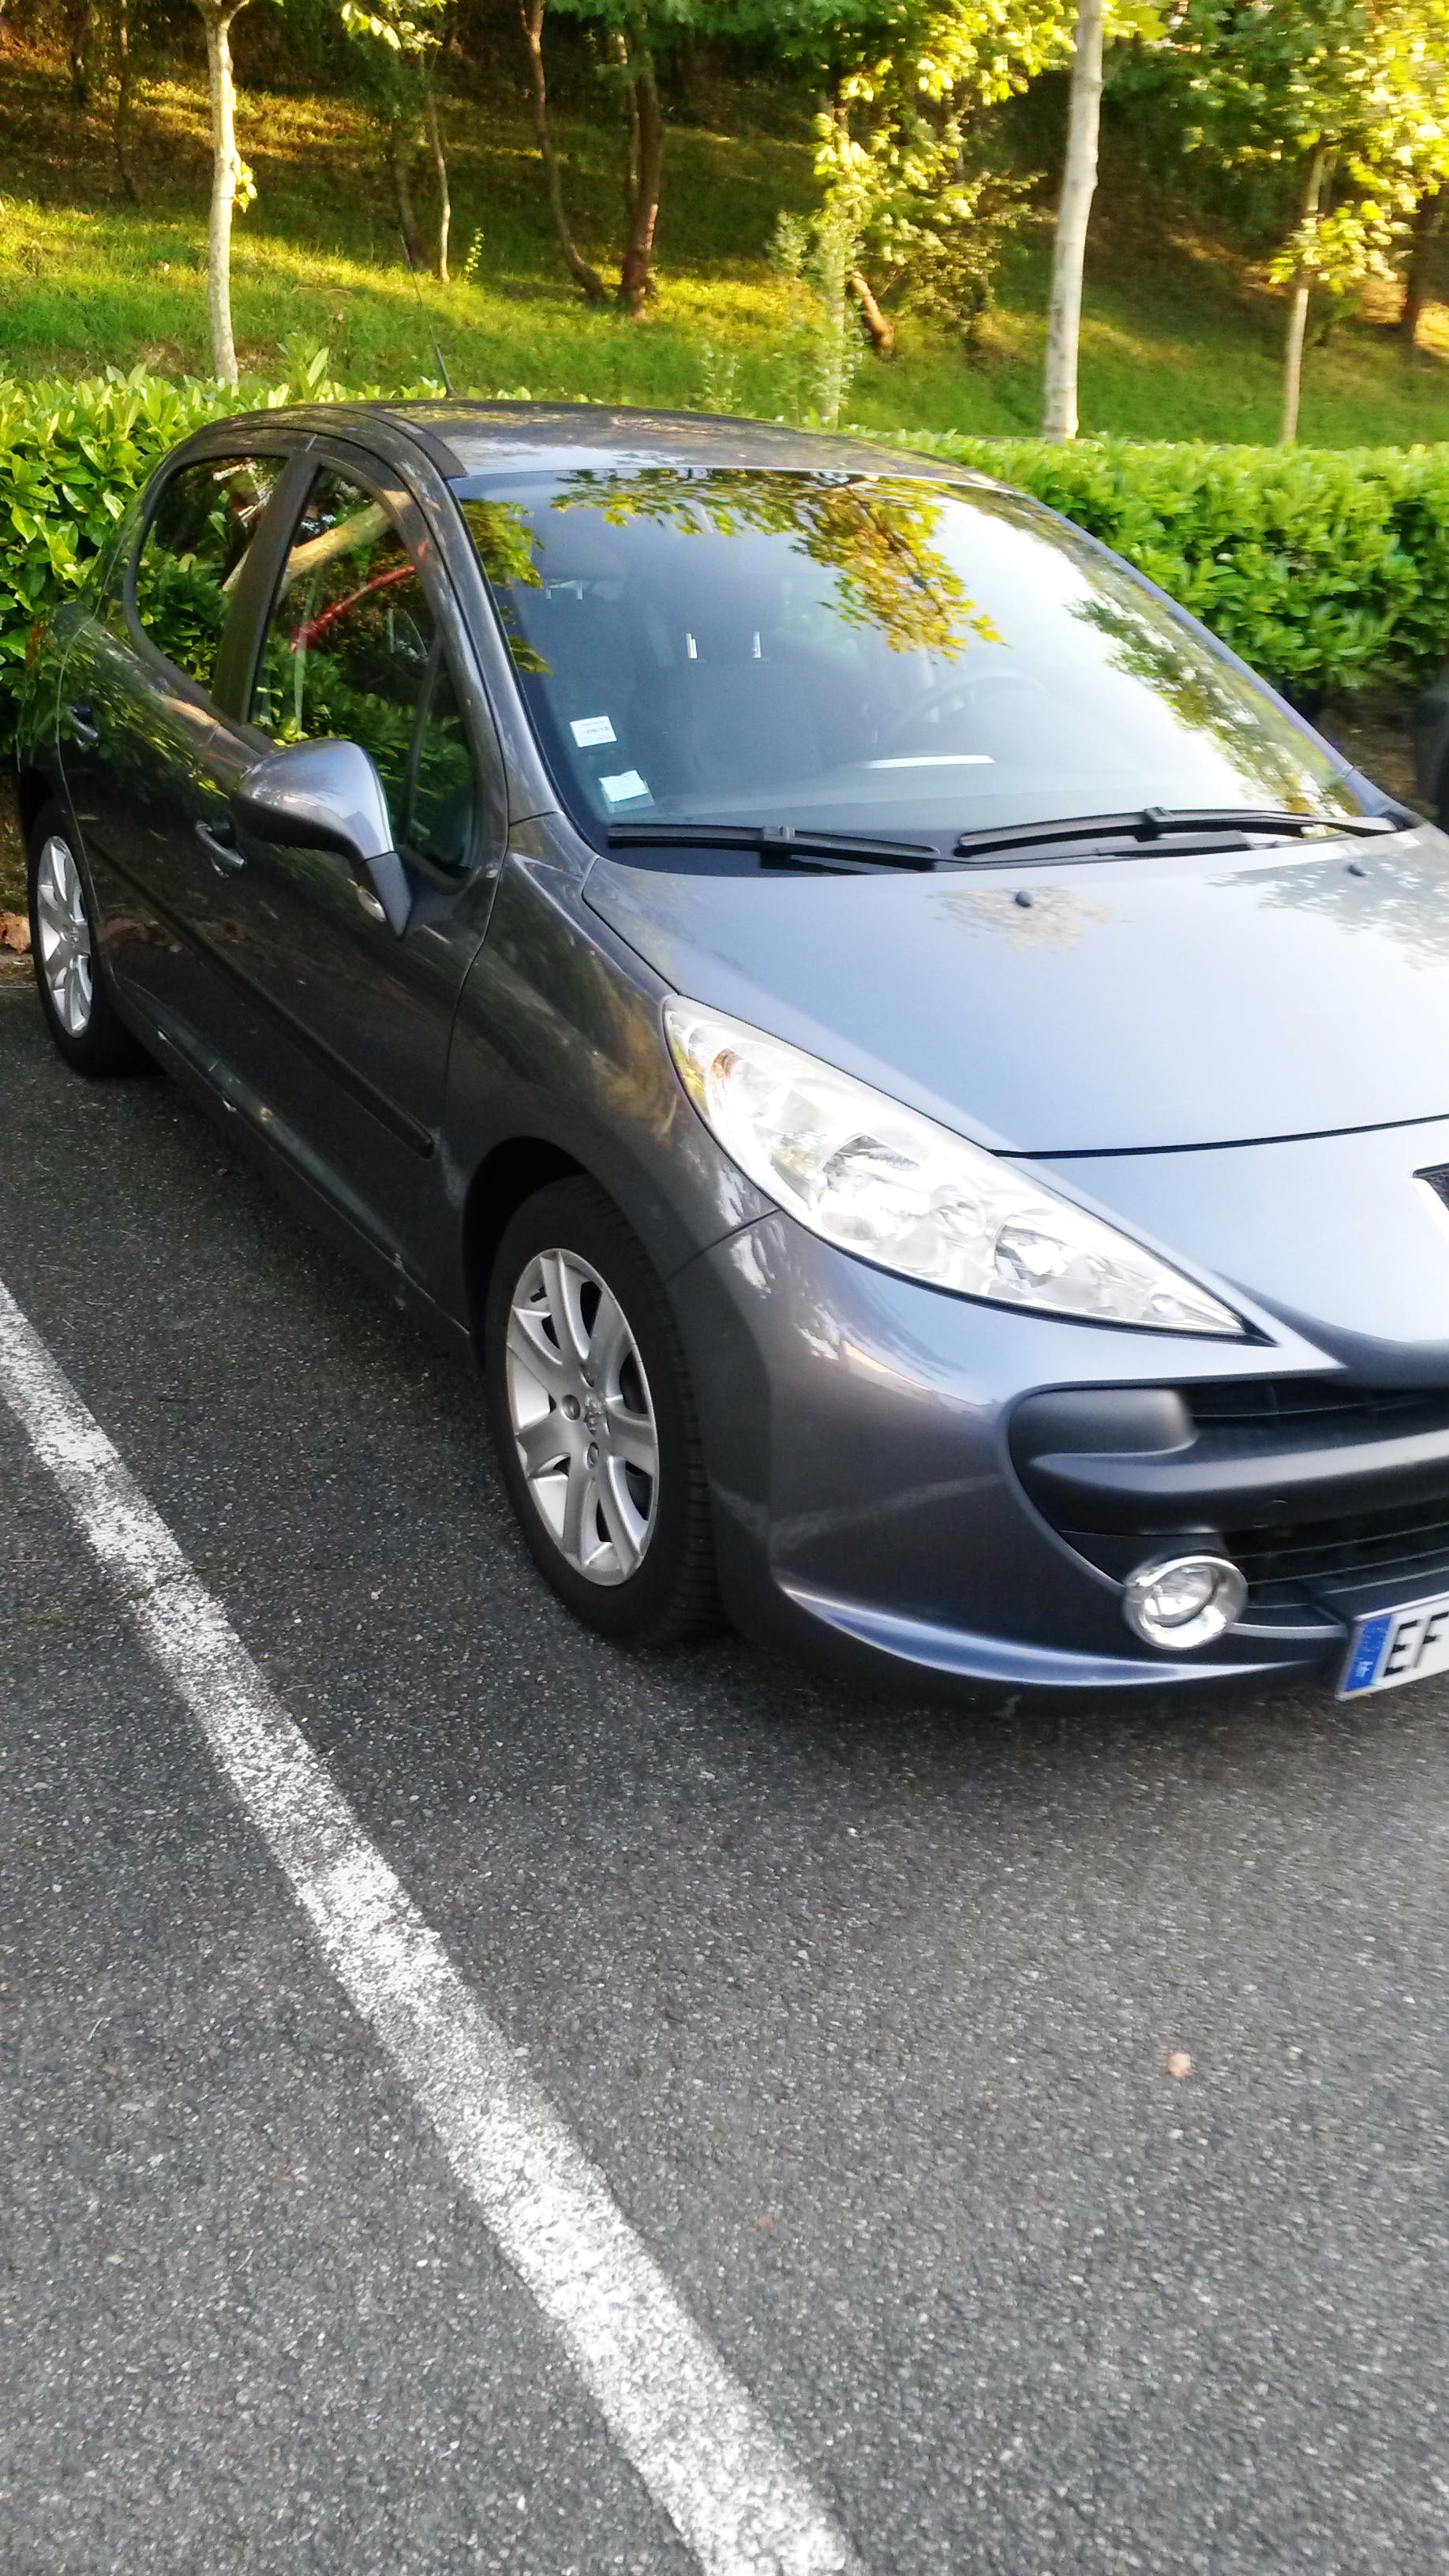 Peugeot 207 ACTIVE 1.6 avec Direction assistée